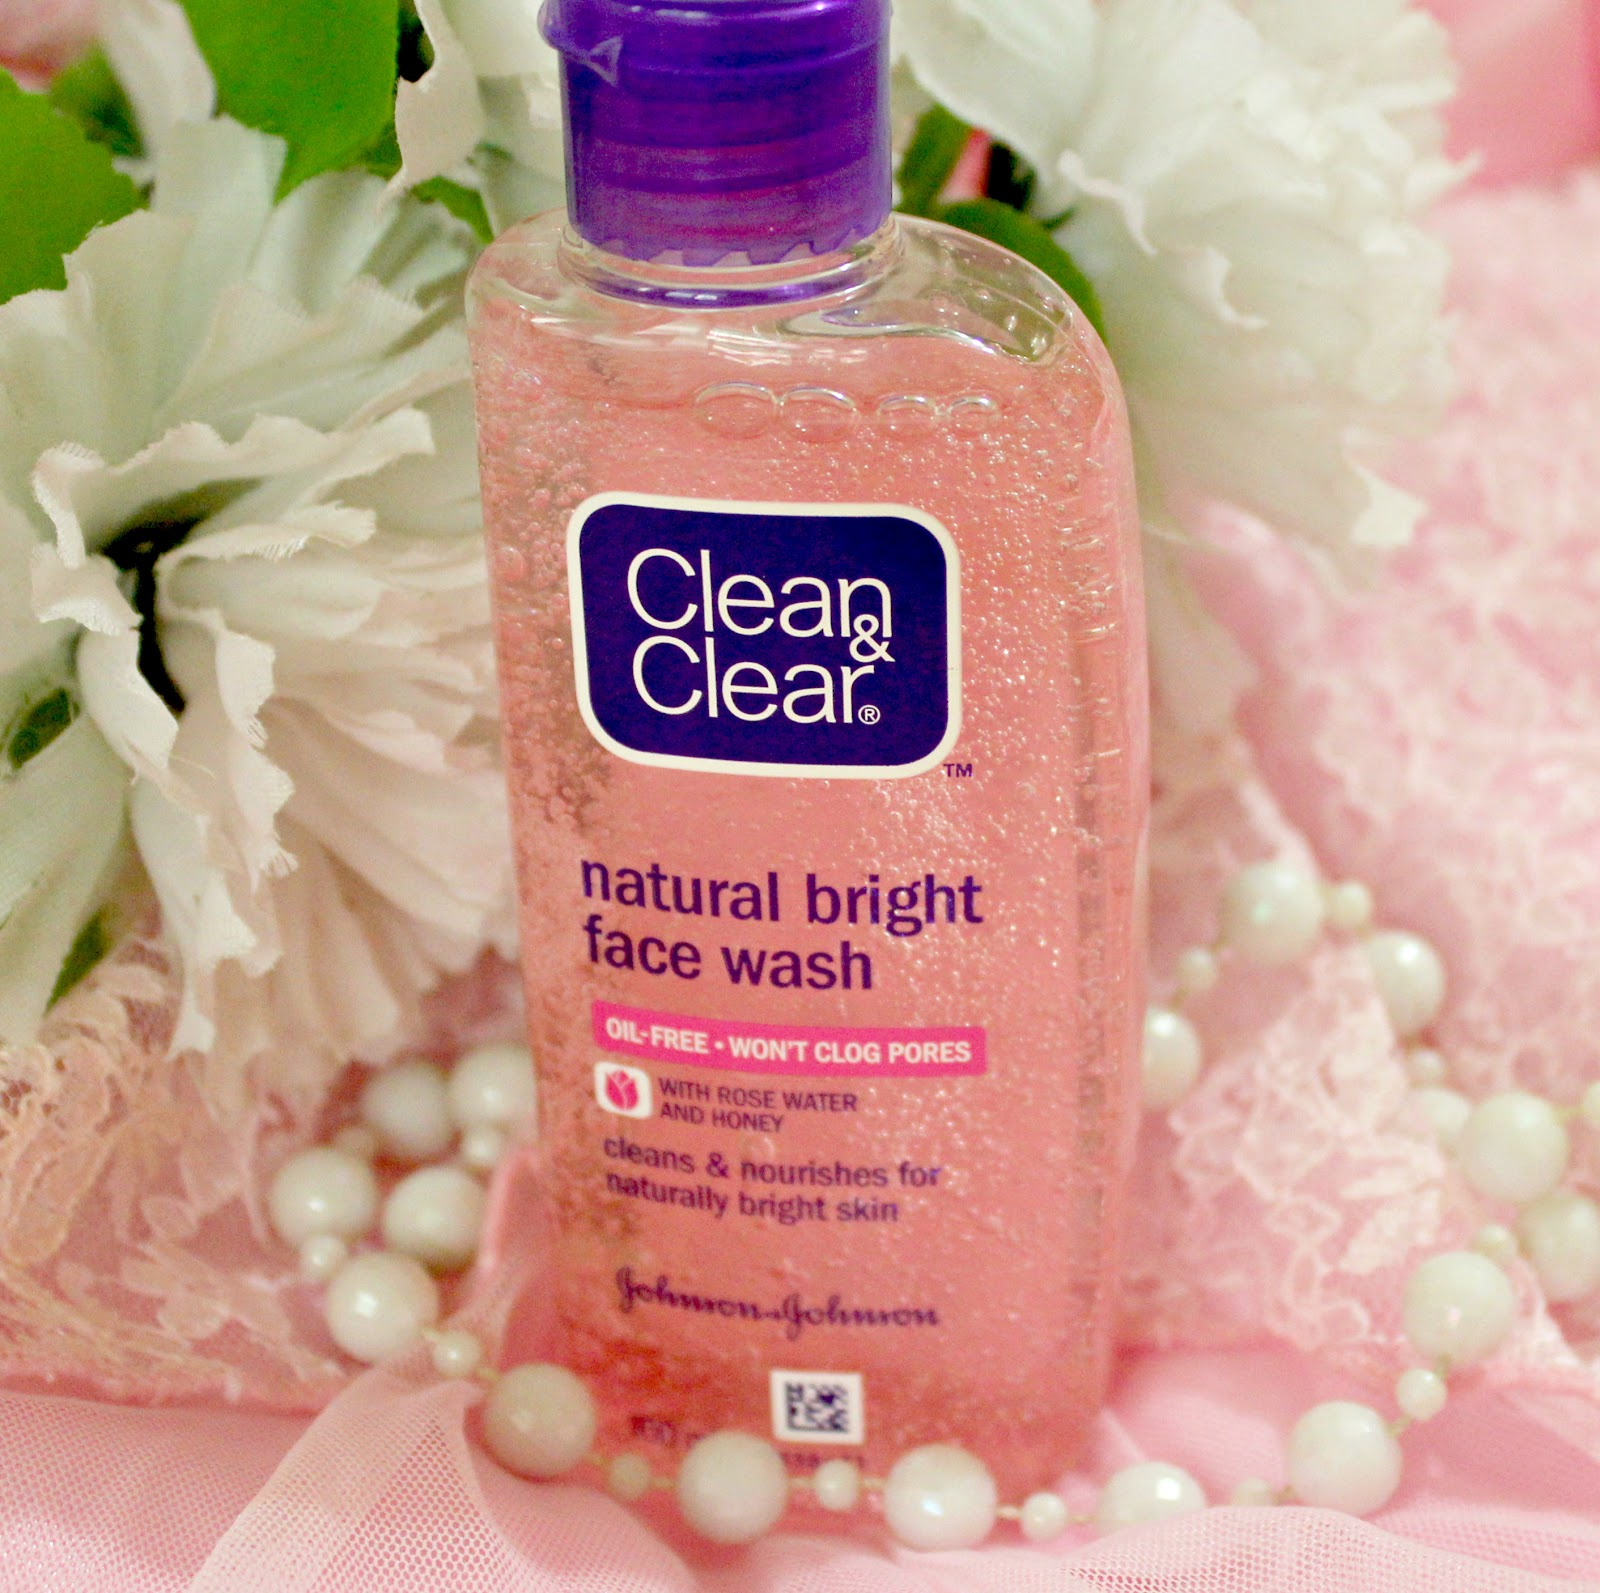 Clean Clear Natural Bright Facewash Review Makeup And Foaming Face Wash 100ml